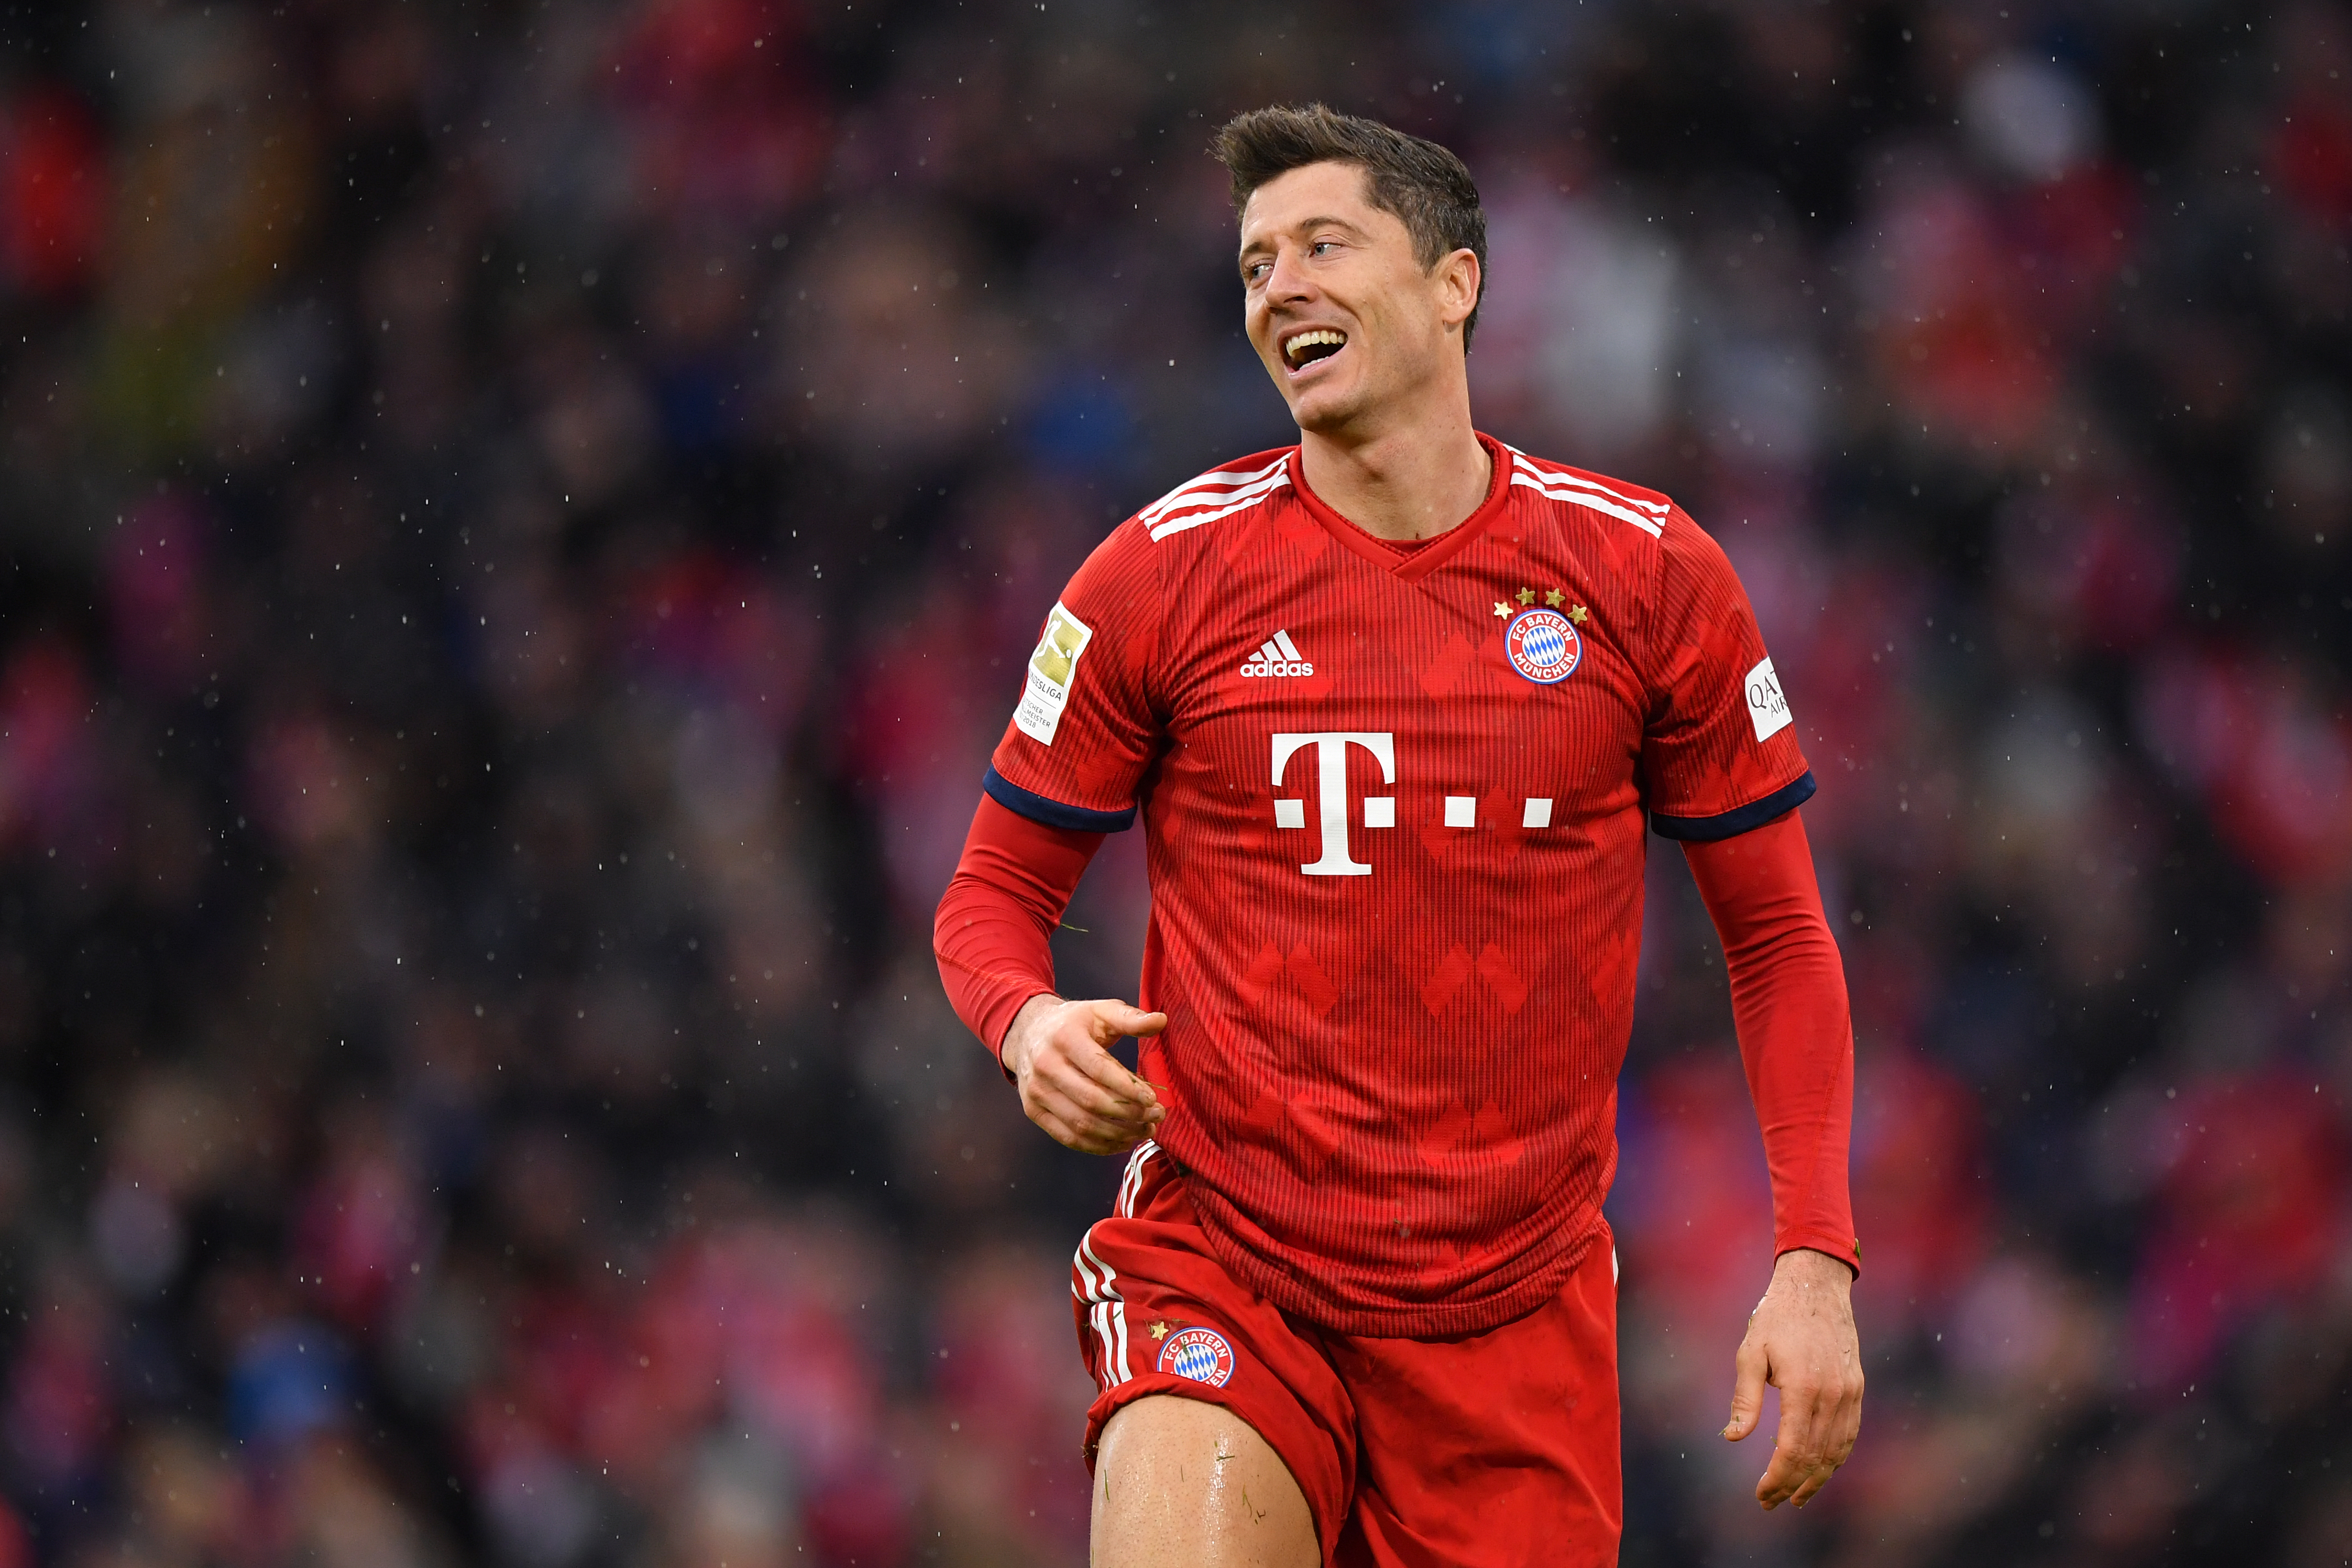 The Polish marksman will look to be the difference maker for Bayern (Photo by Sebastian Widmann/Bongarts/Getty Images)